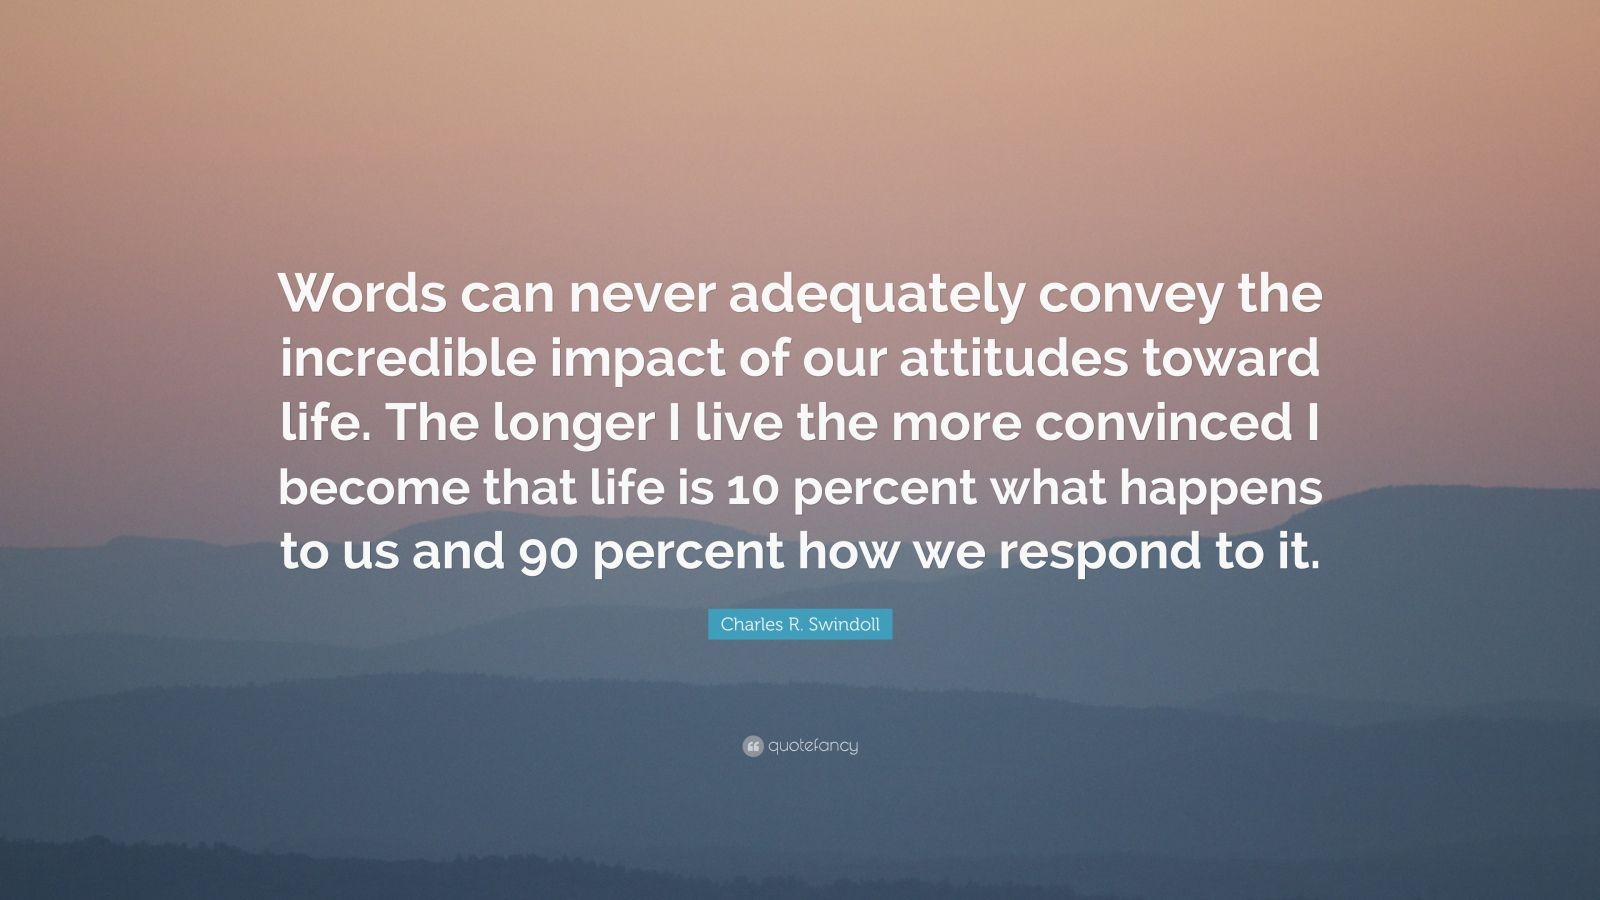 """Charles R. Swindoll Quote: """"Words can never adequately convey the incredible impact of our attitudes toward life. The longer I live the more convinced I become that life is 10 percent what happens to us and 90 percent how we respond to it."""""""